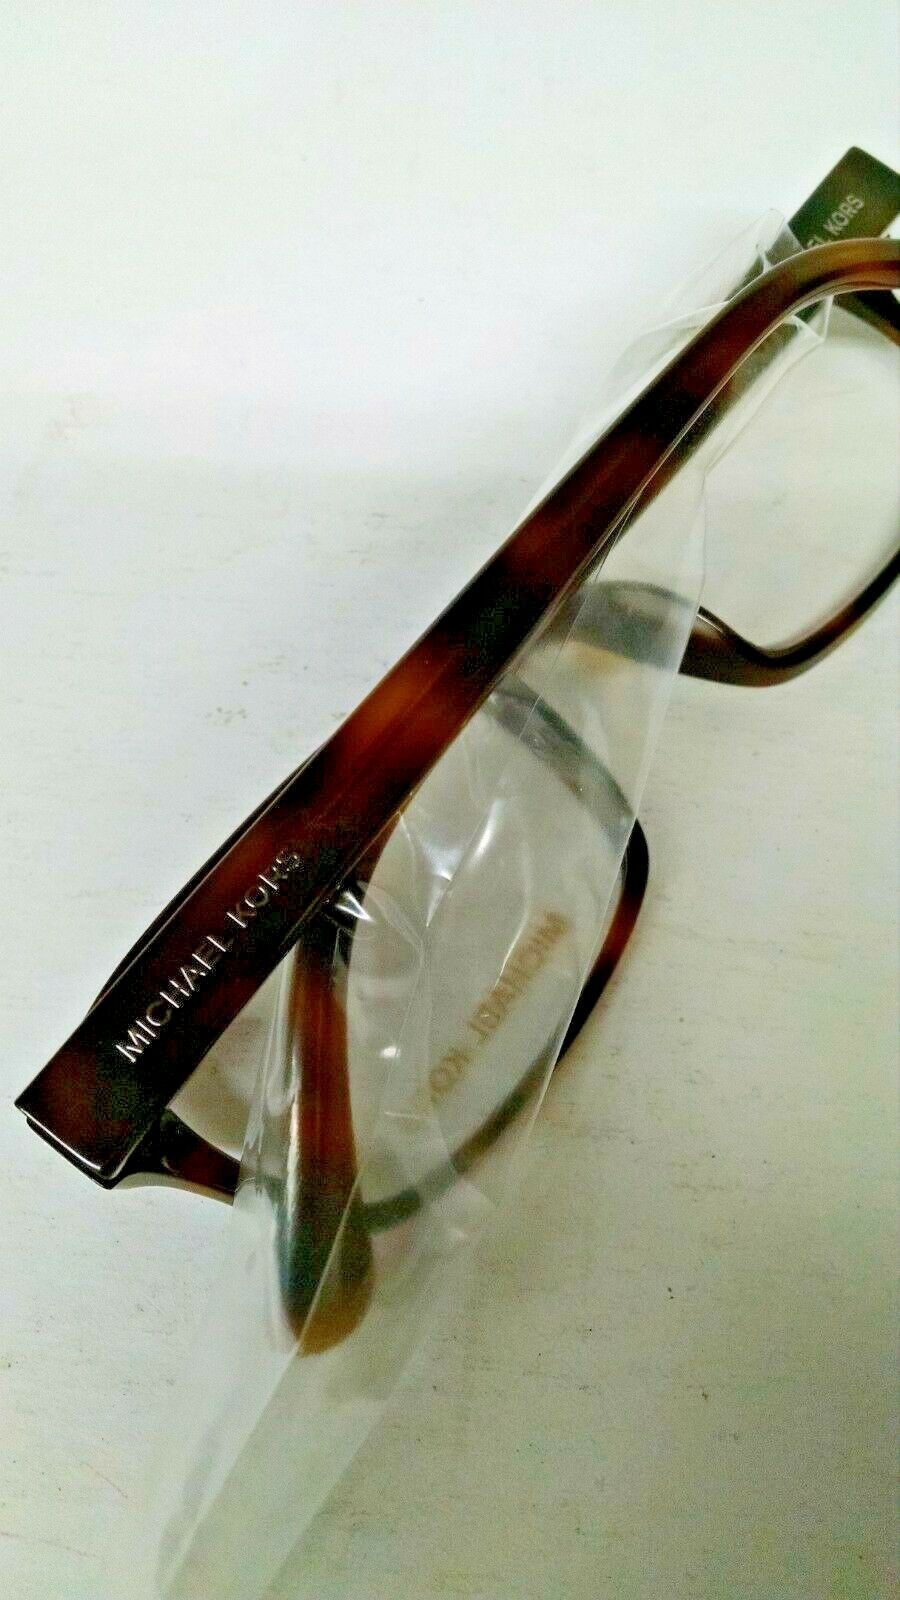 Michael Kors Eyeglass Frame 54-17-140 MK 828M 240 authentic